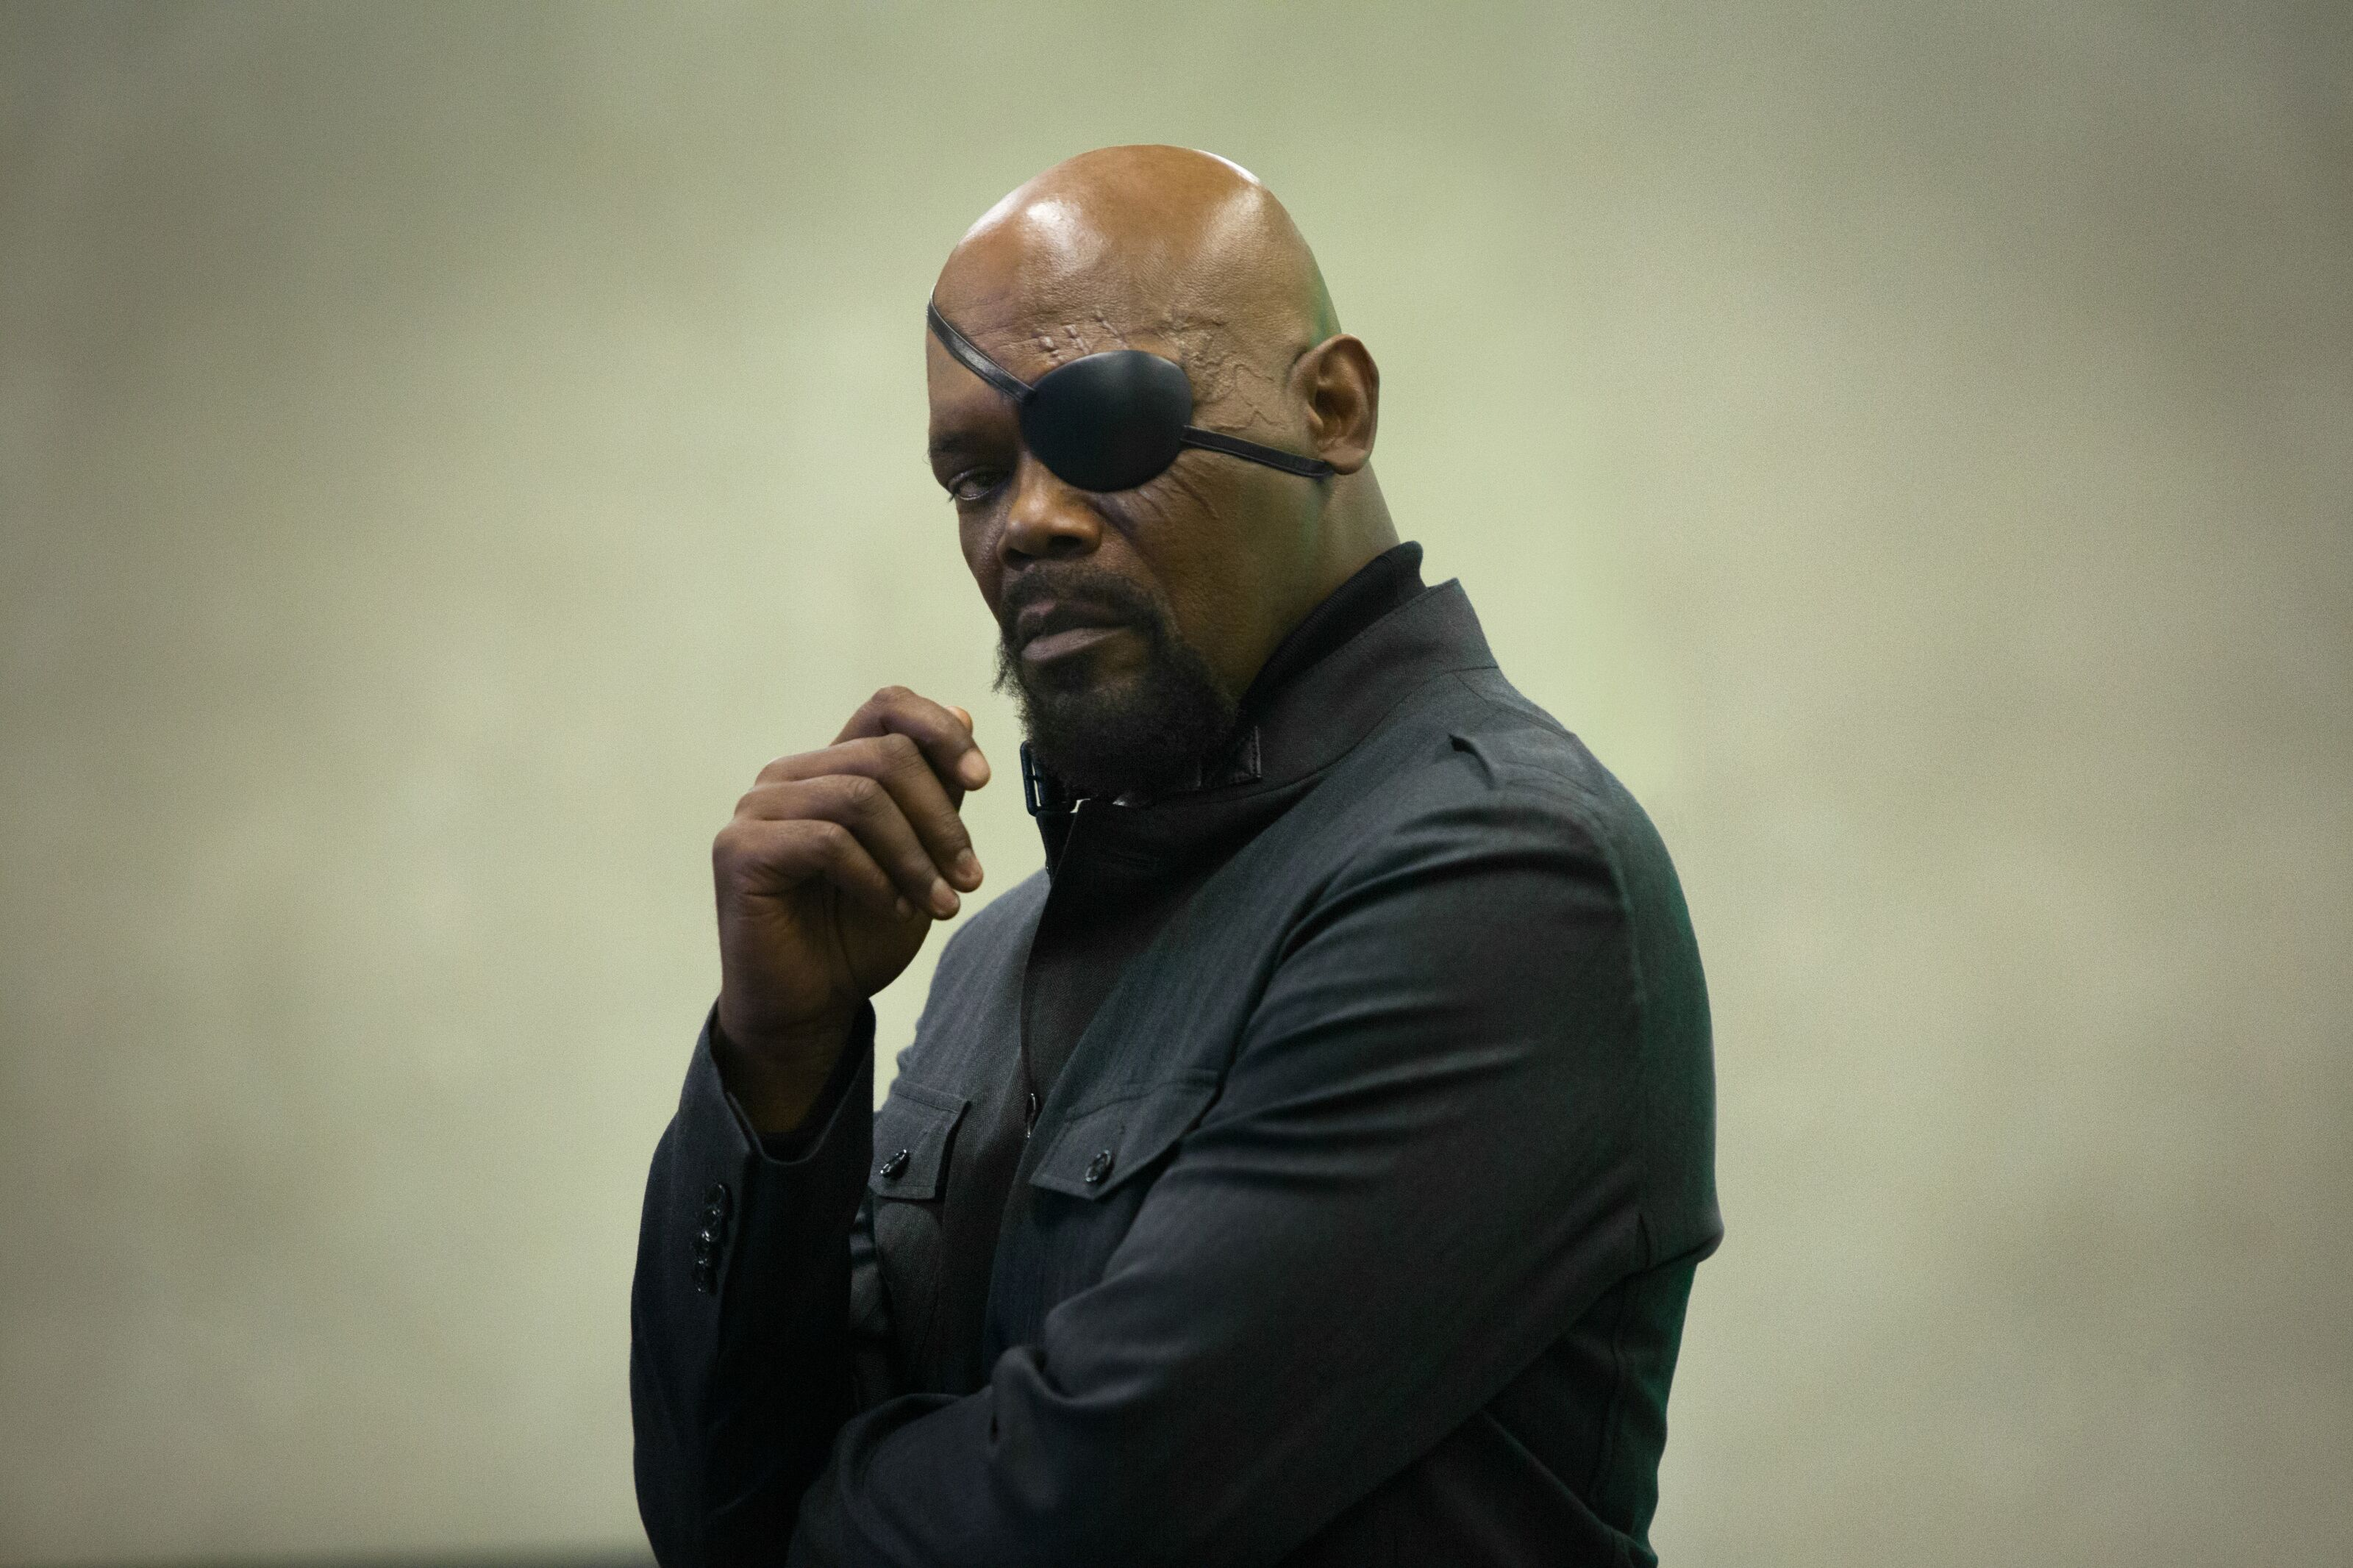 Nick Fury references Spider-Man and the X-Men in deleted 'Iron Man' scene